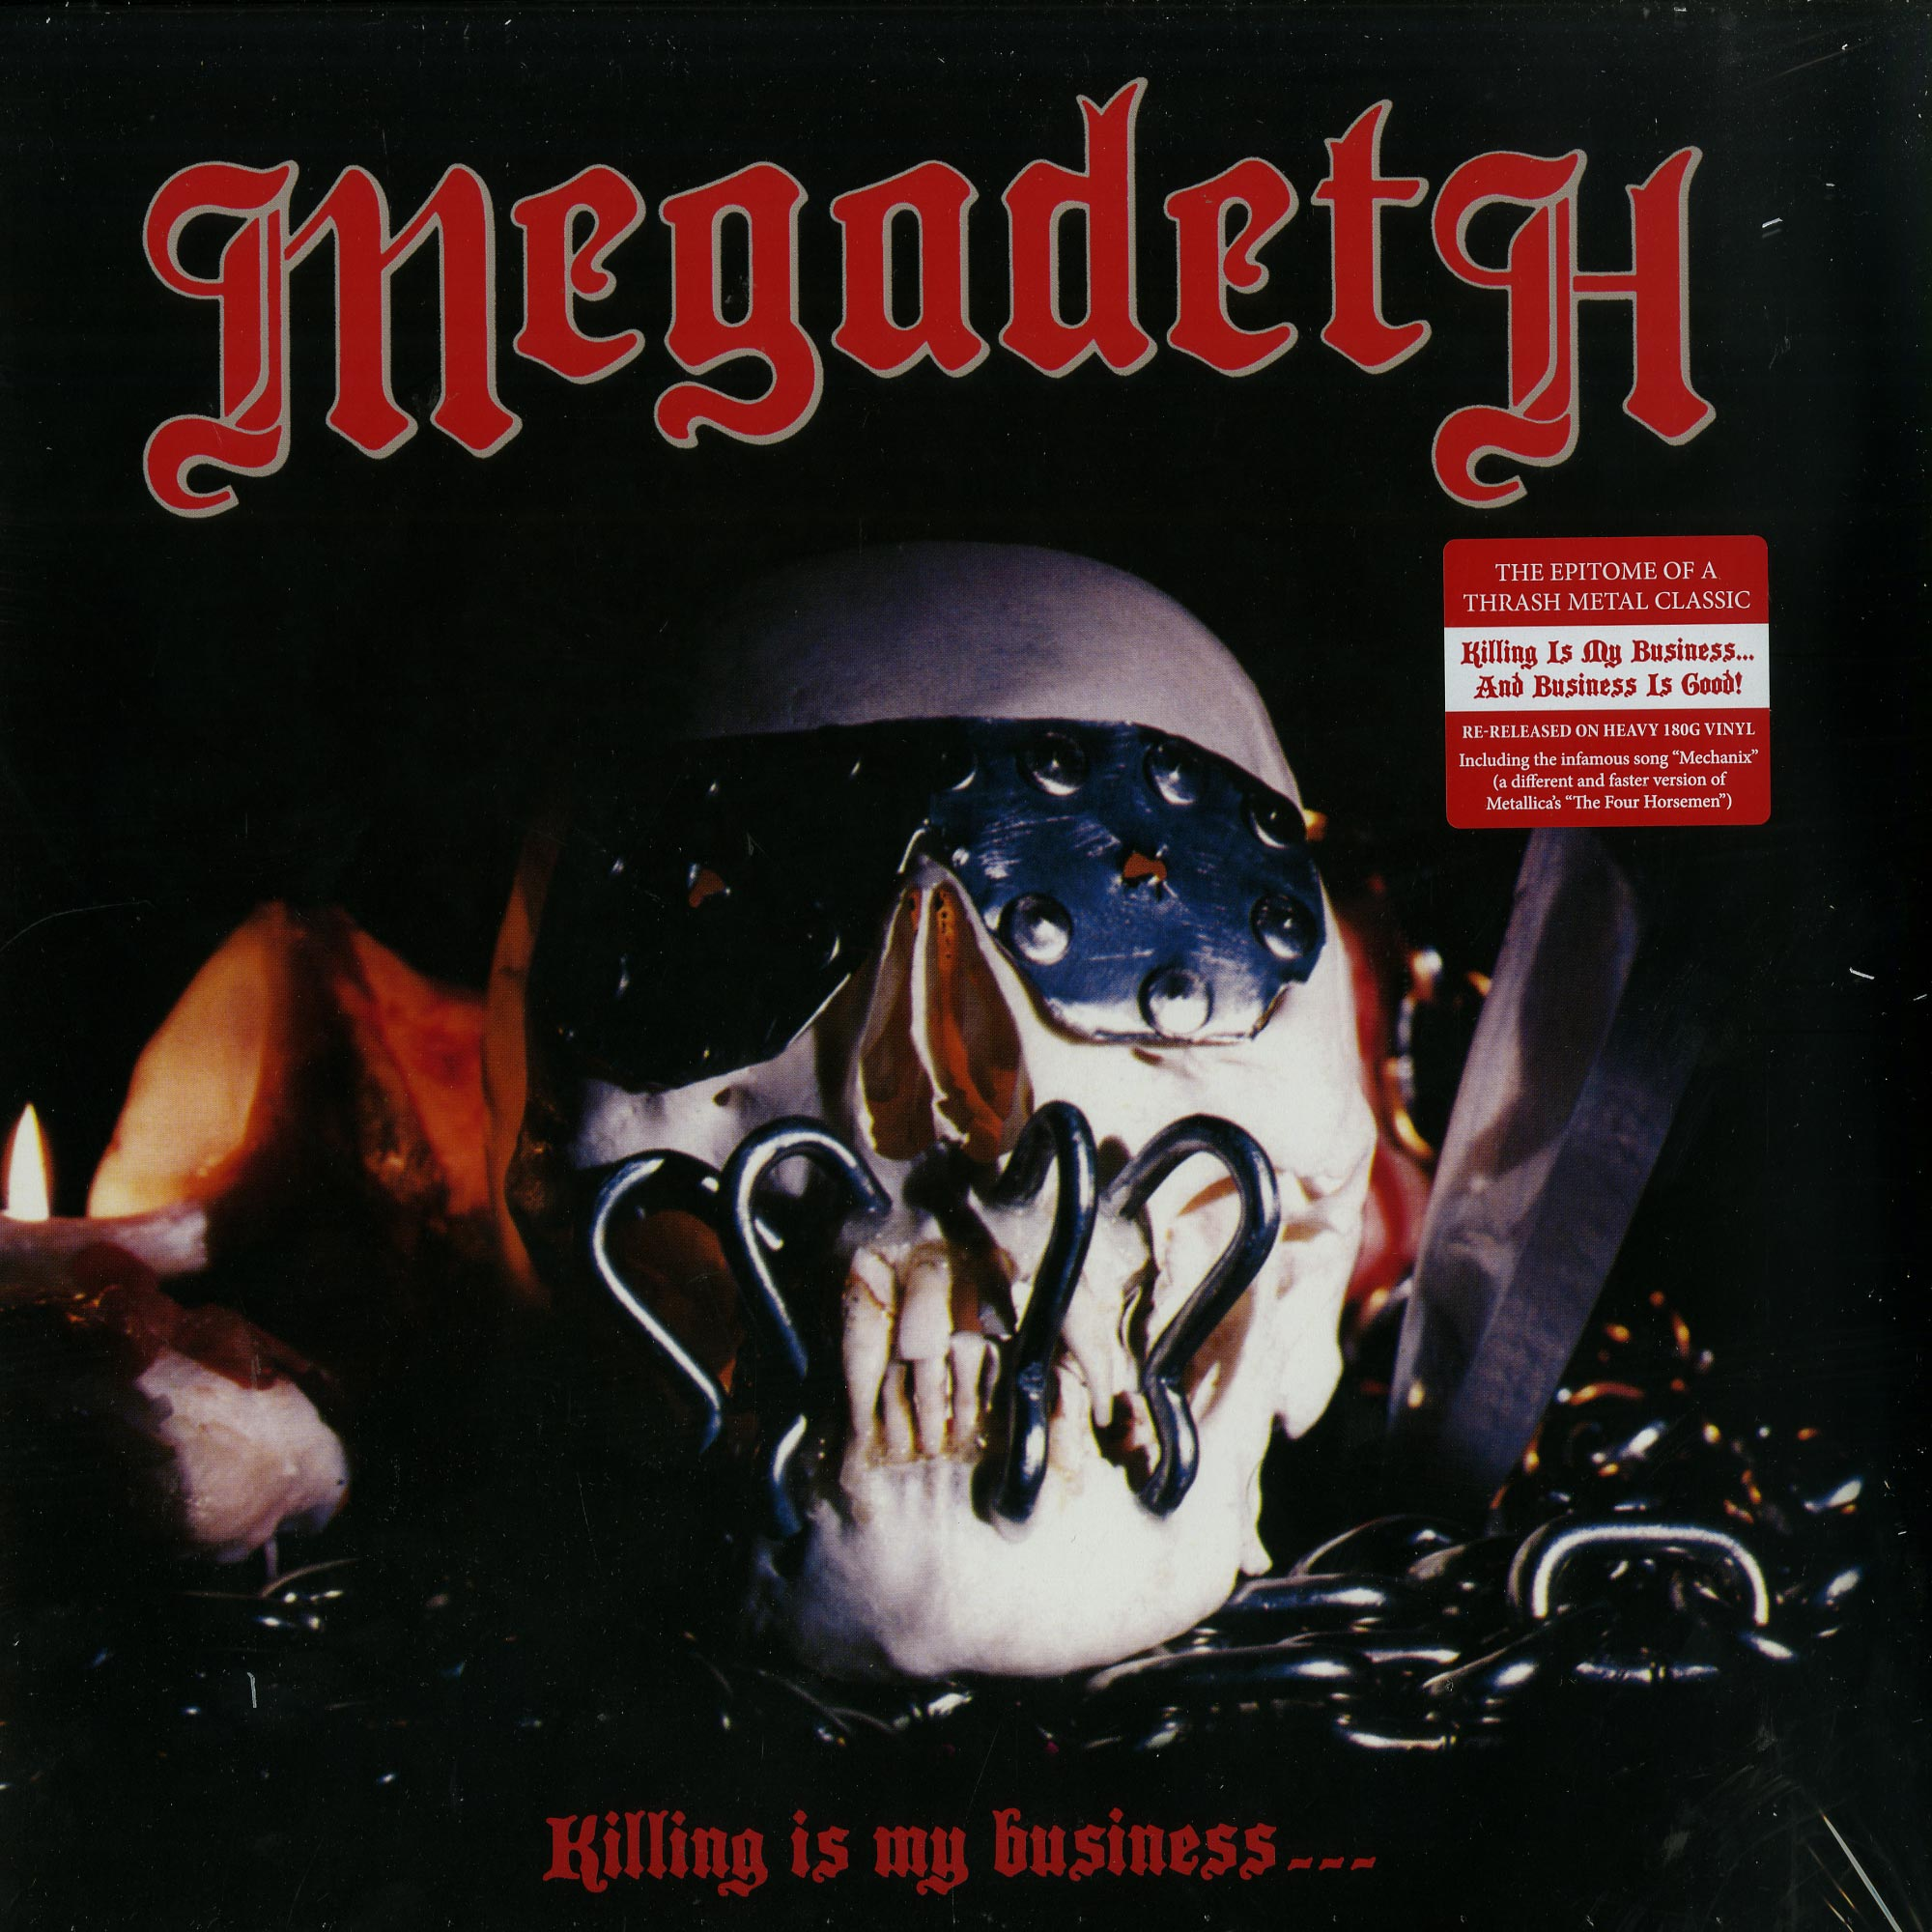 Megadeath - KILLING IS MY BUSINESS... AND BUSINESS IS GOOD!